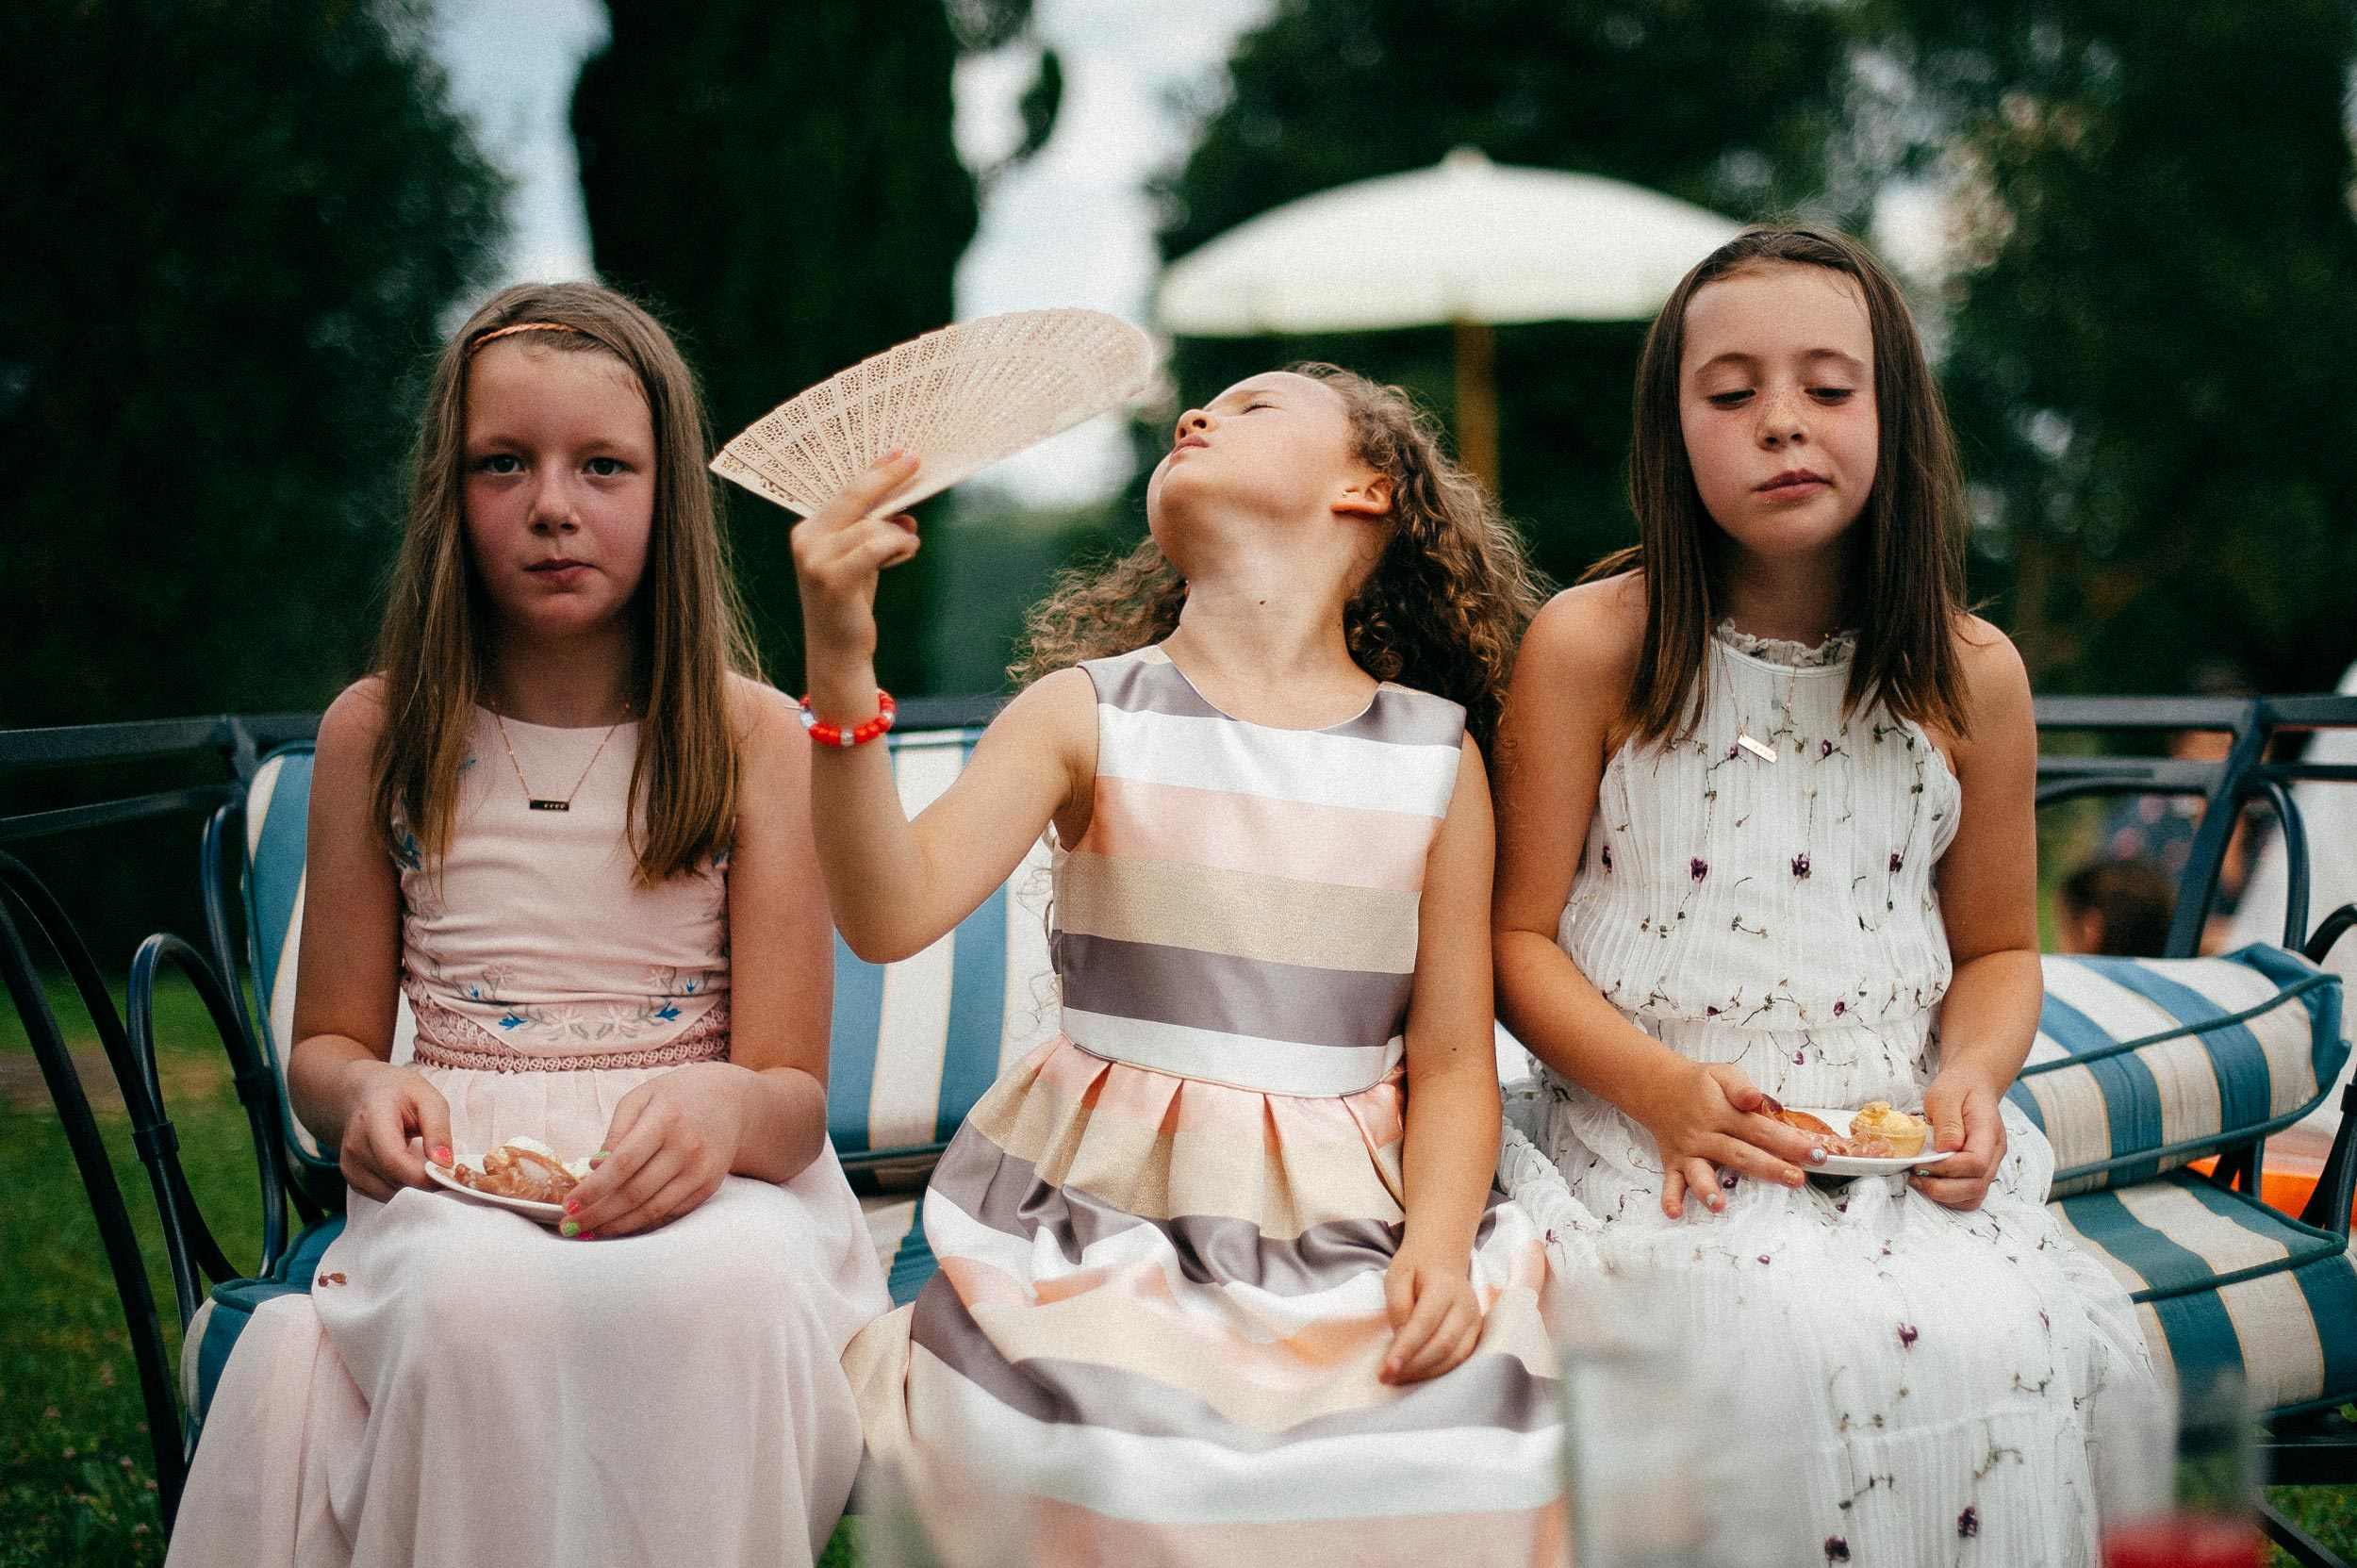 girls-at-the-reception-using-fan-hot-weather-documentary-wedding-photography-in-tuscany-by-Alessandro-Avenali.jpg